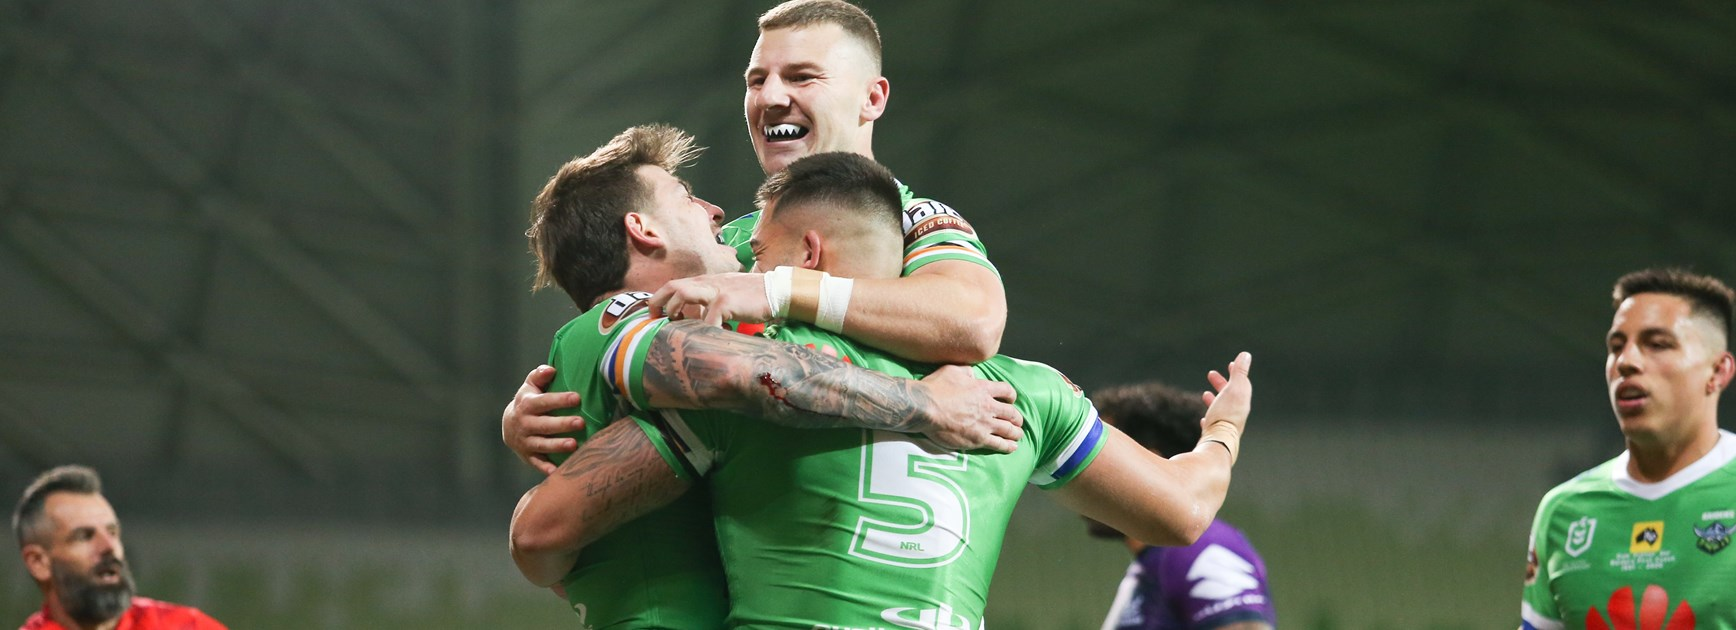 The Raiders celebrate a try in Melbourne.